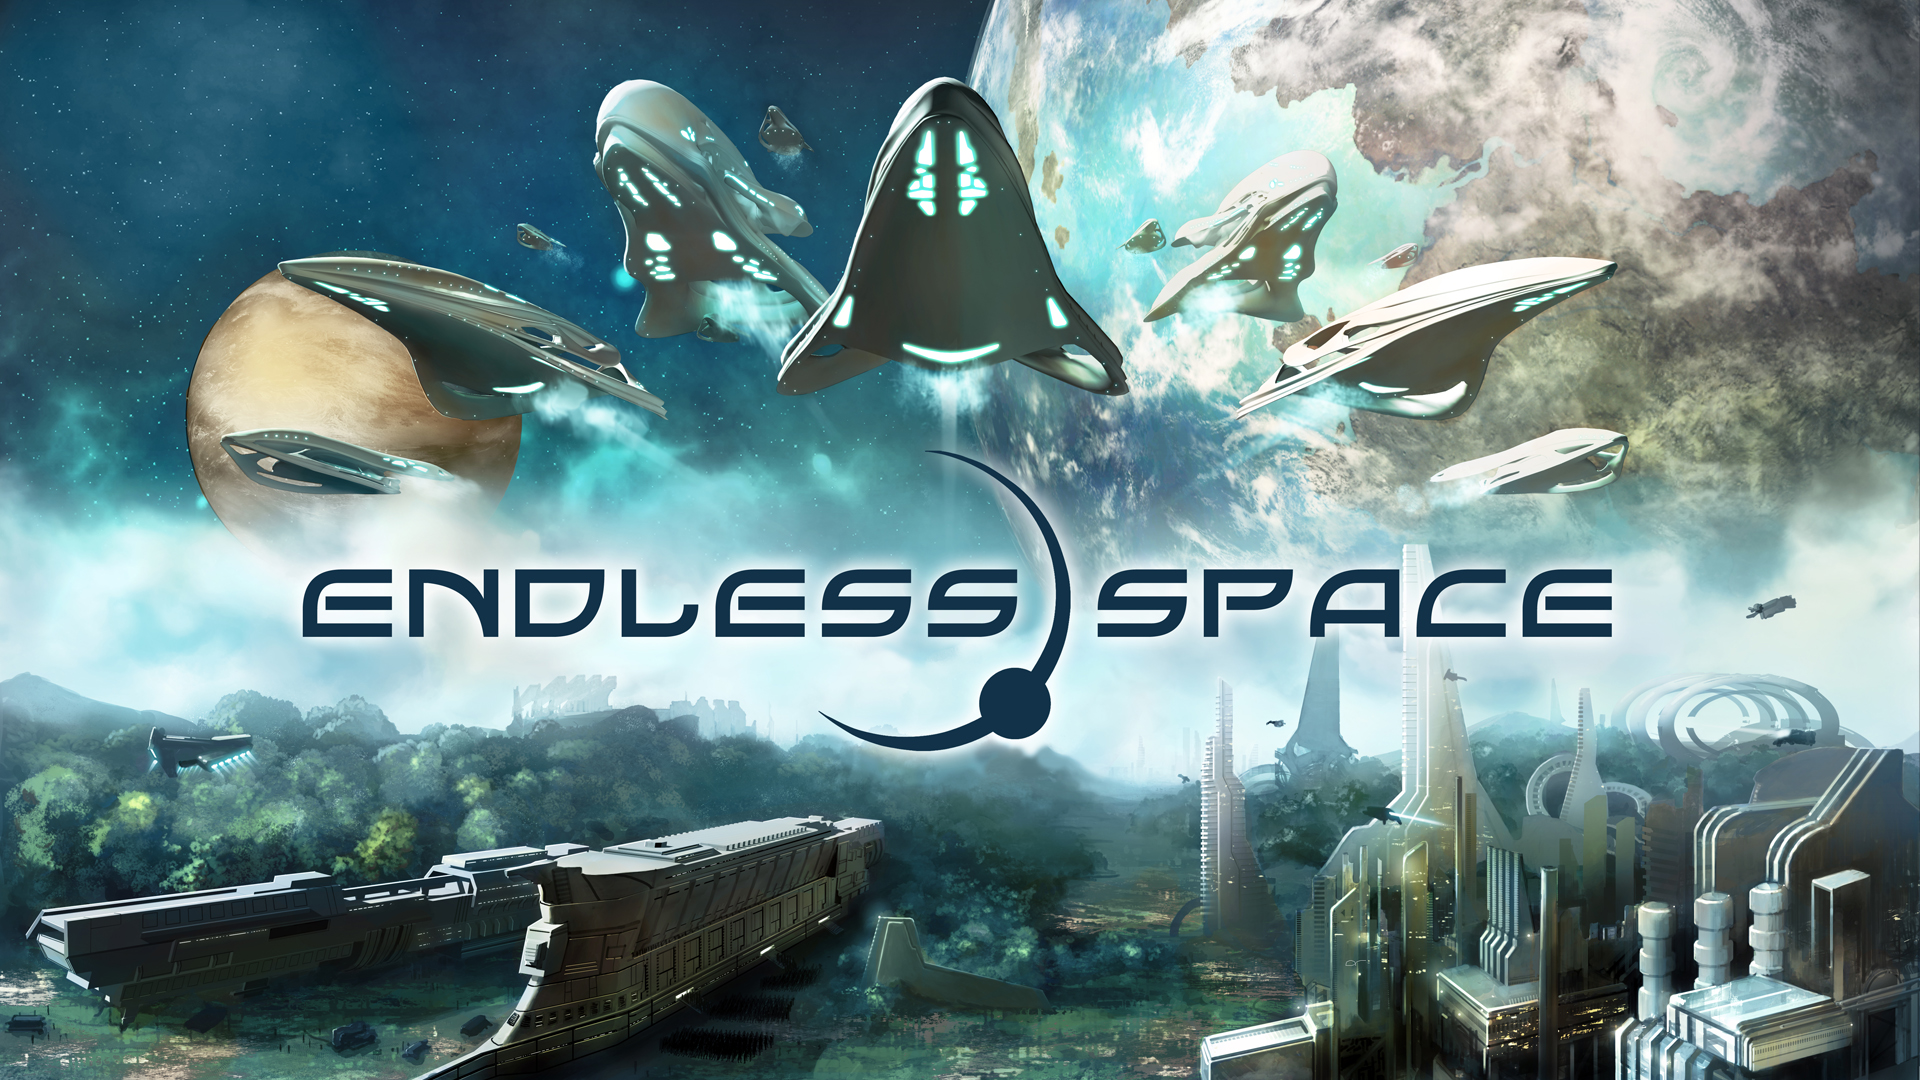 Endless Space comes to Mac